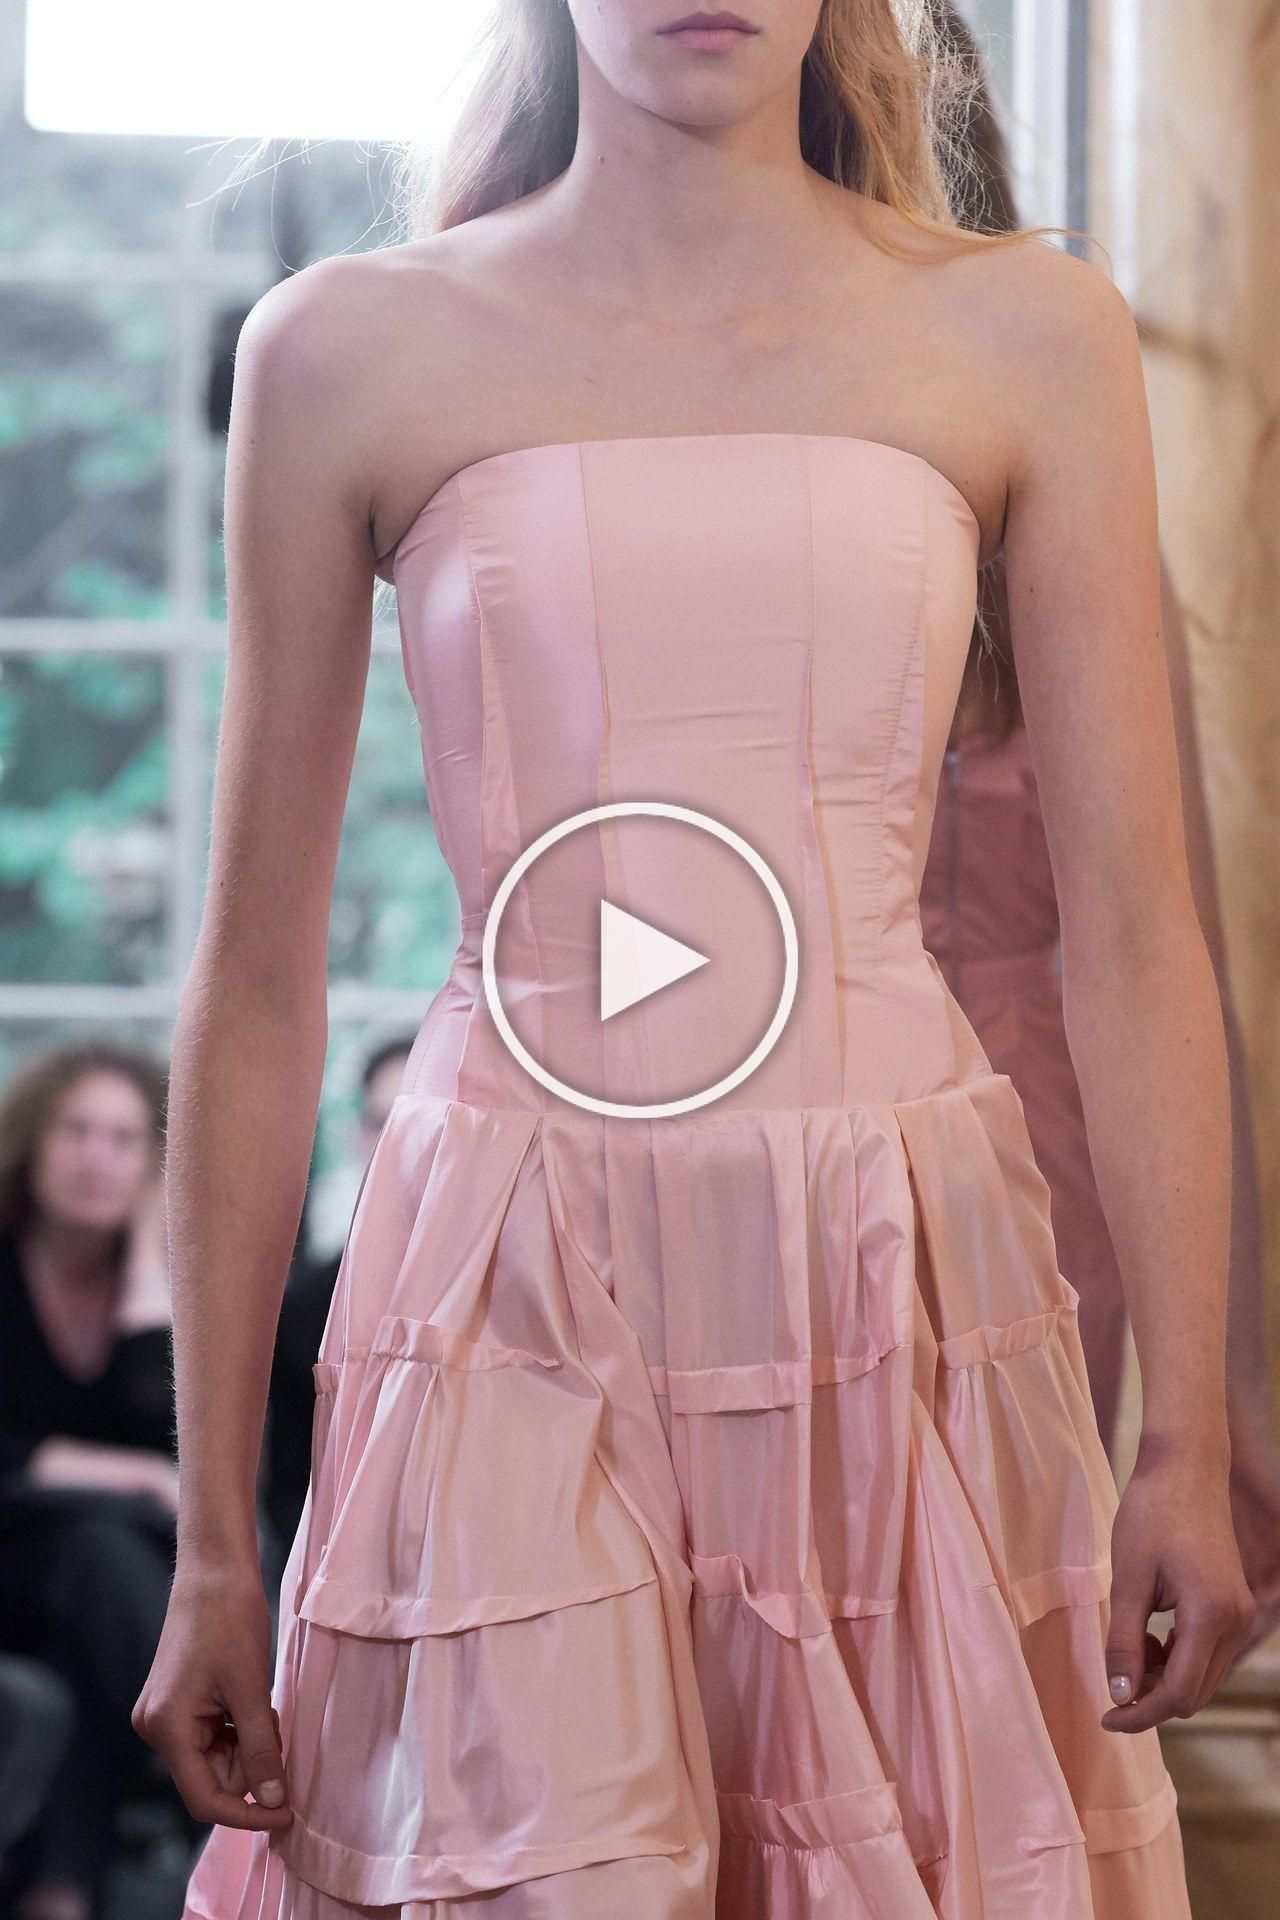 Olivier Theyskens RTW Spring 20 - #2020 #catwalk #couture #fashion #high #olivier #pink #rtw #runway #style #theyskens